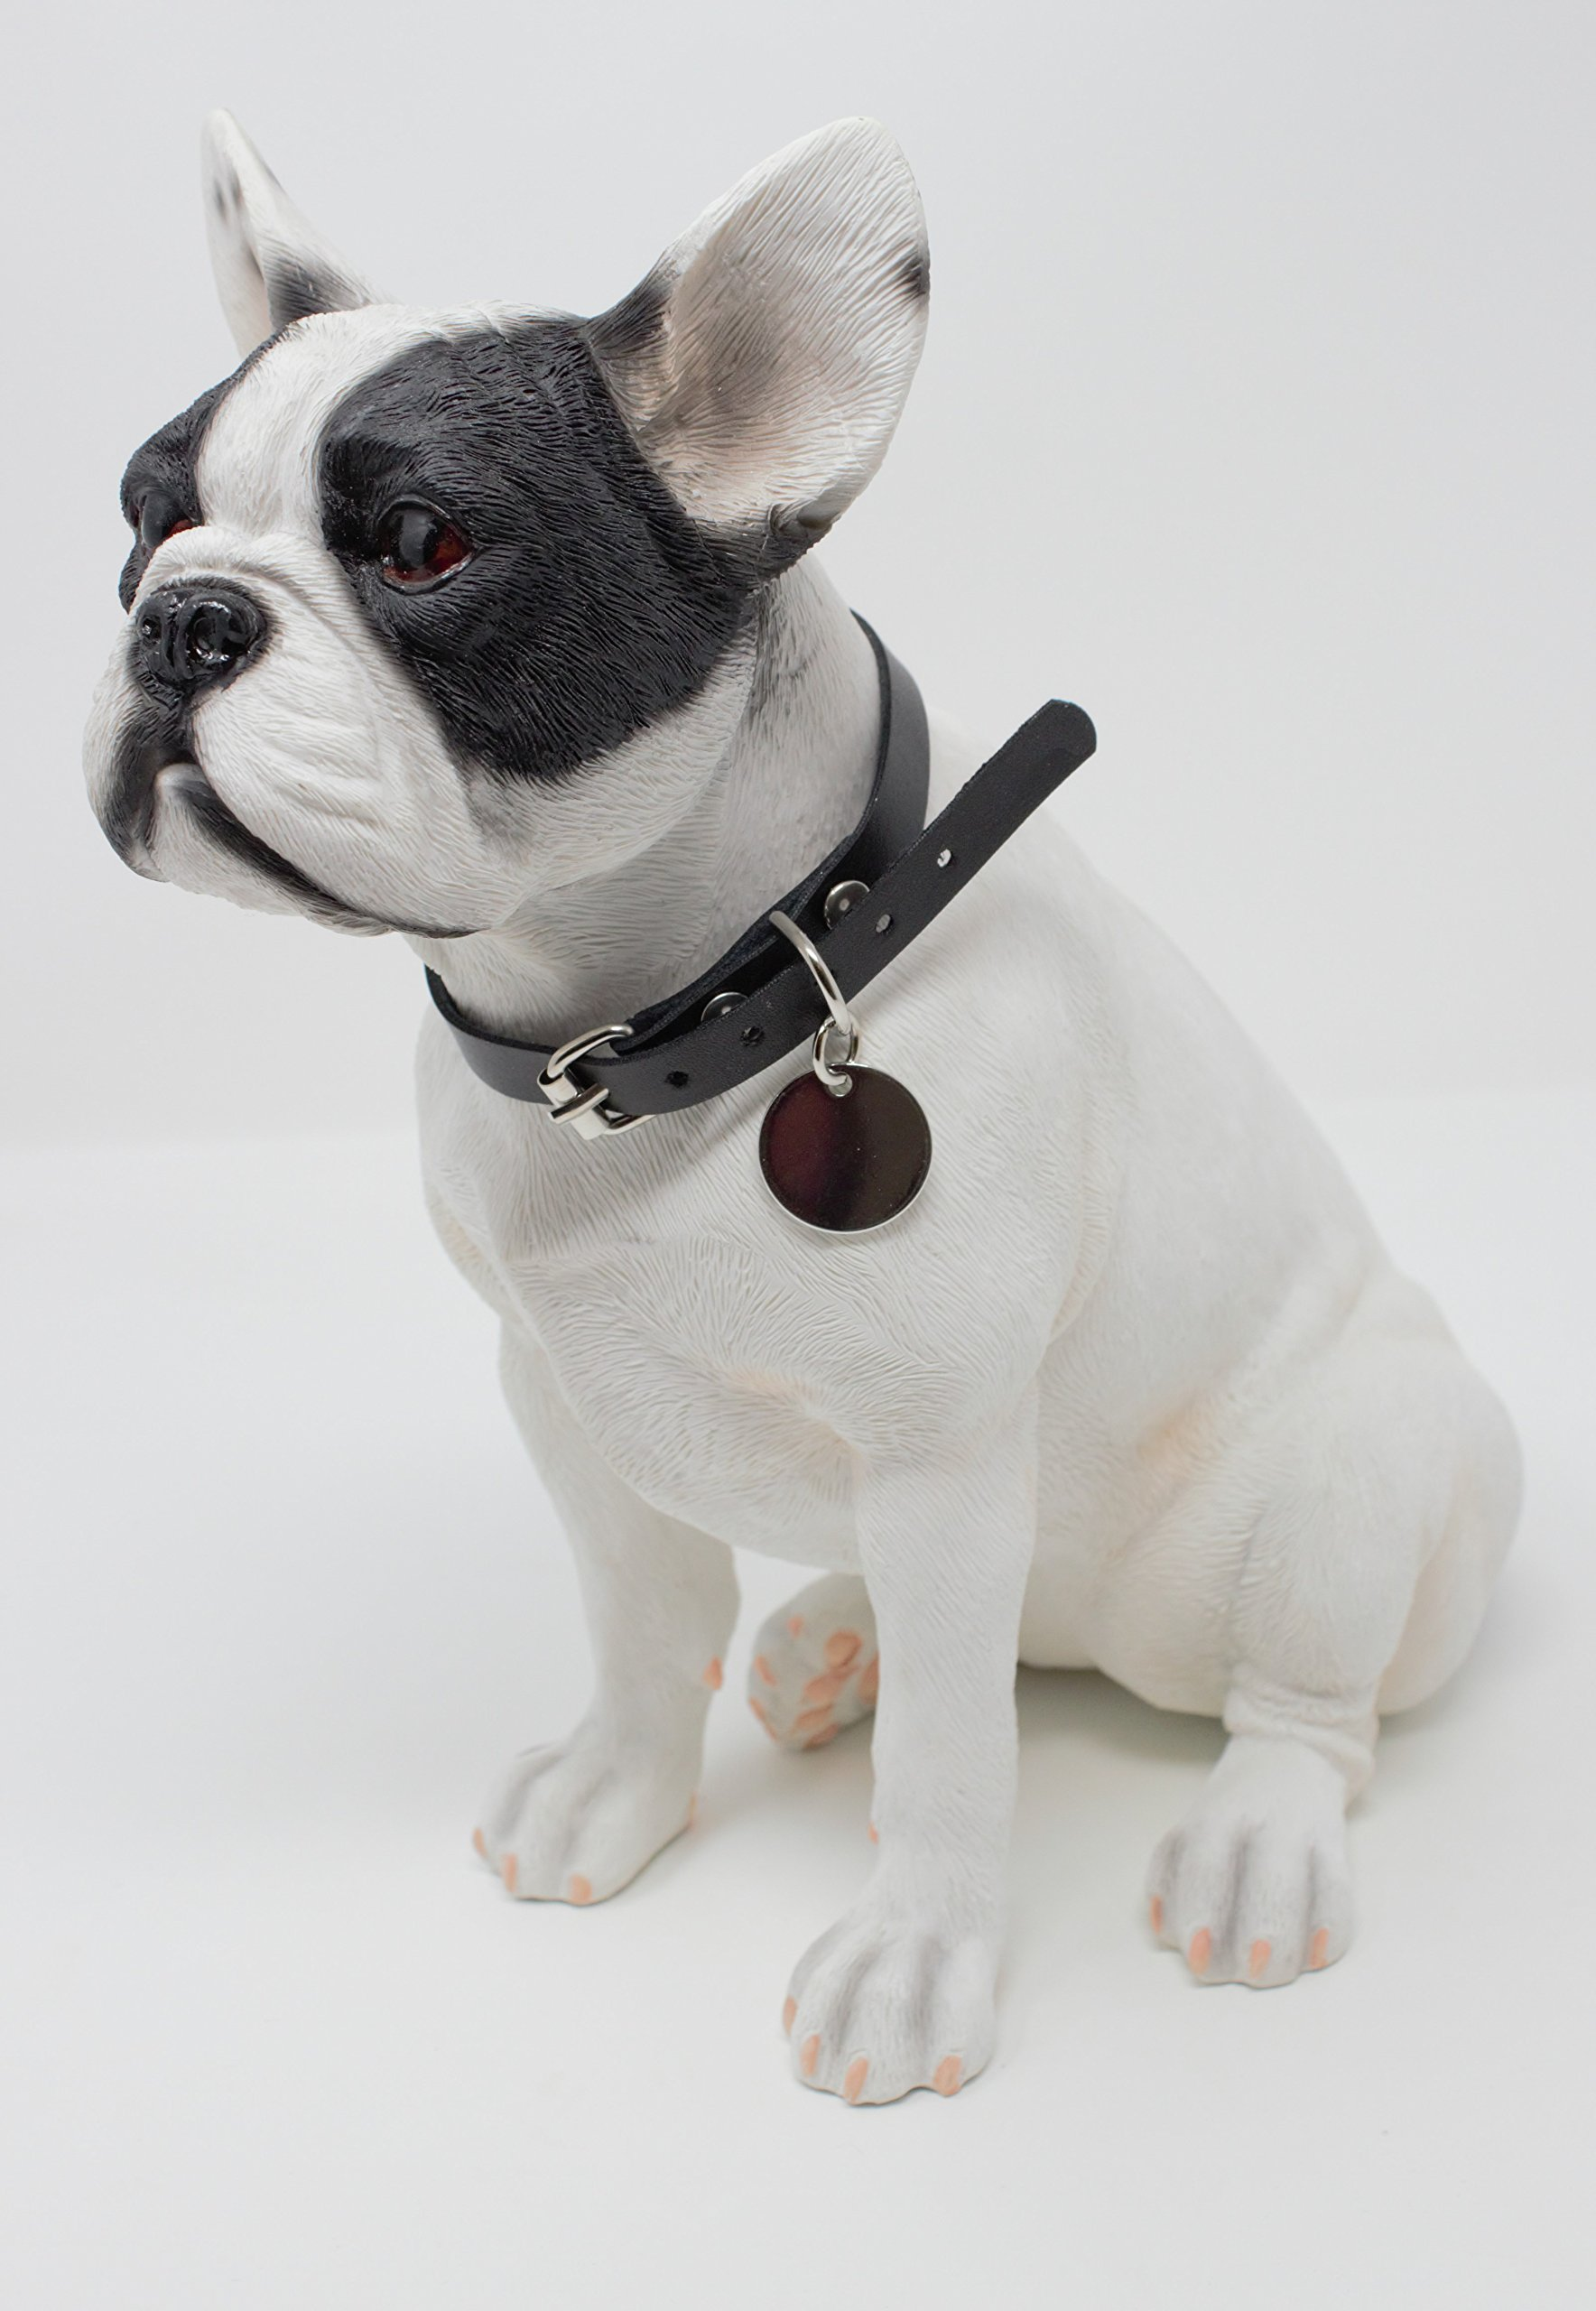 Lesser & Pavey White French Bulldog Sitting, h26cm